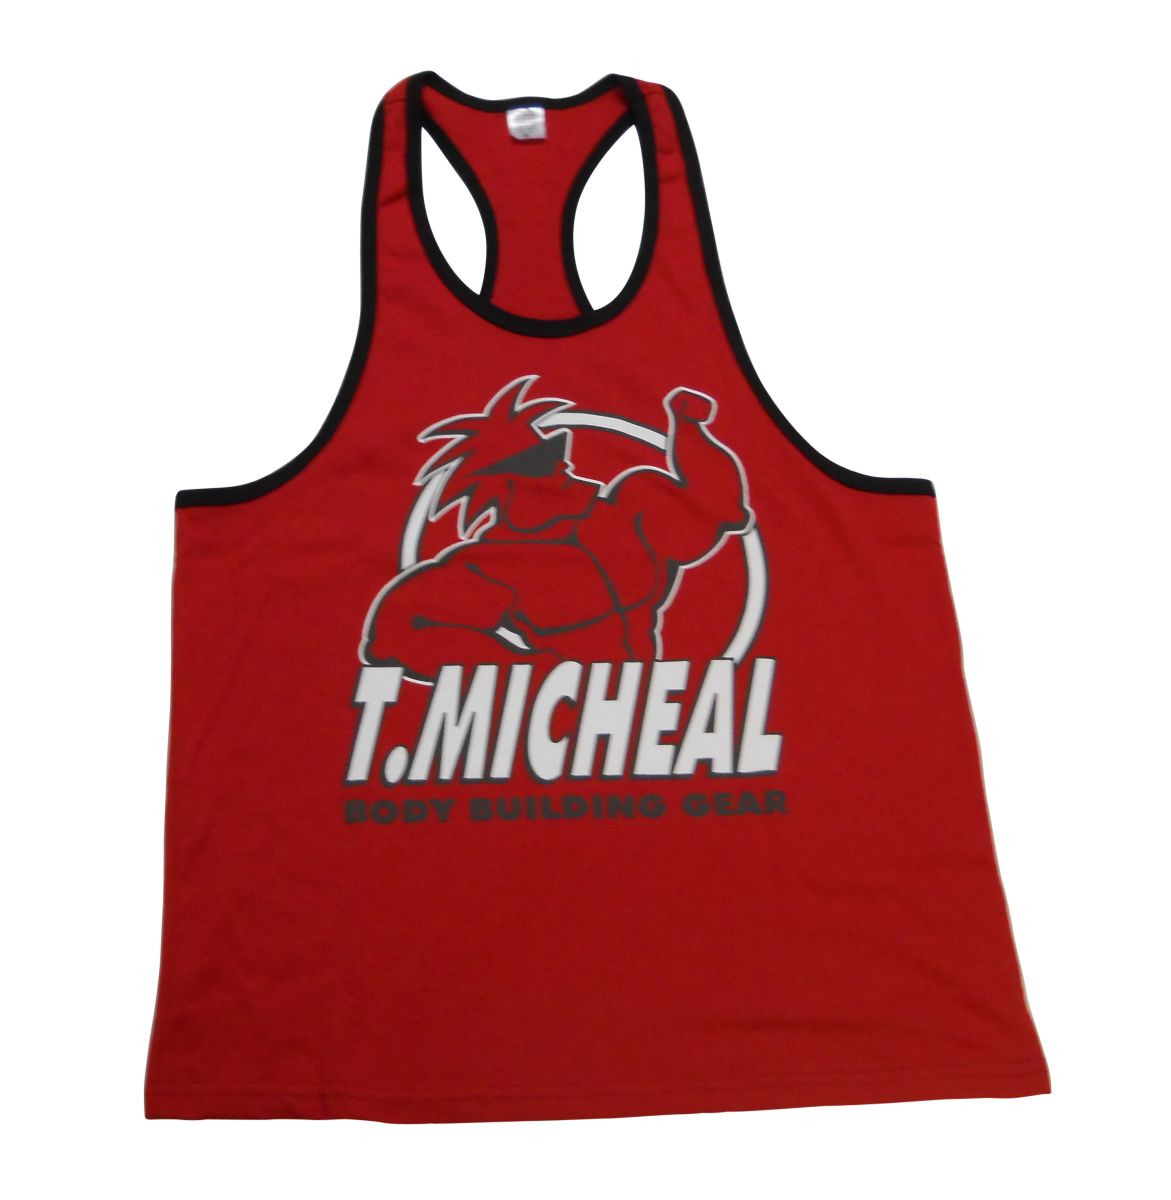 New Micheal Ringer Camo Tank Top T